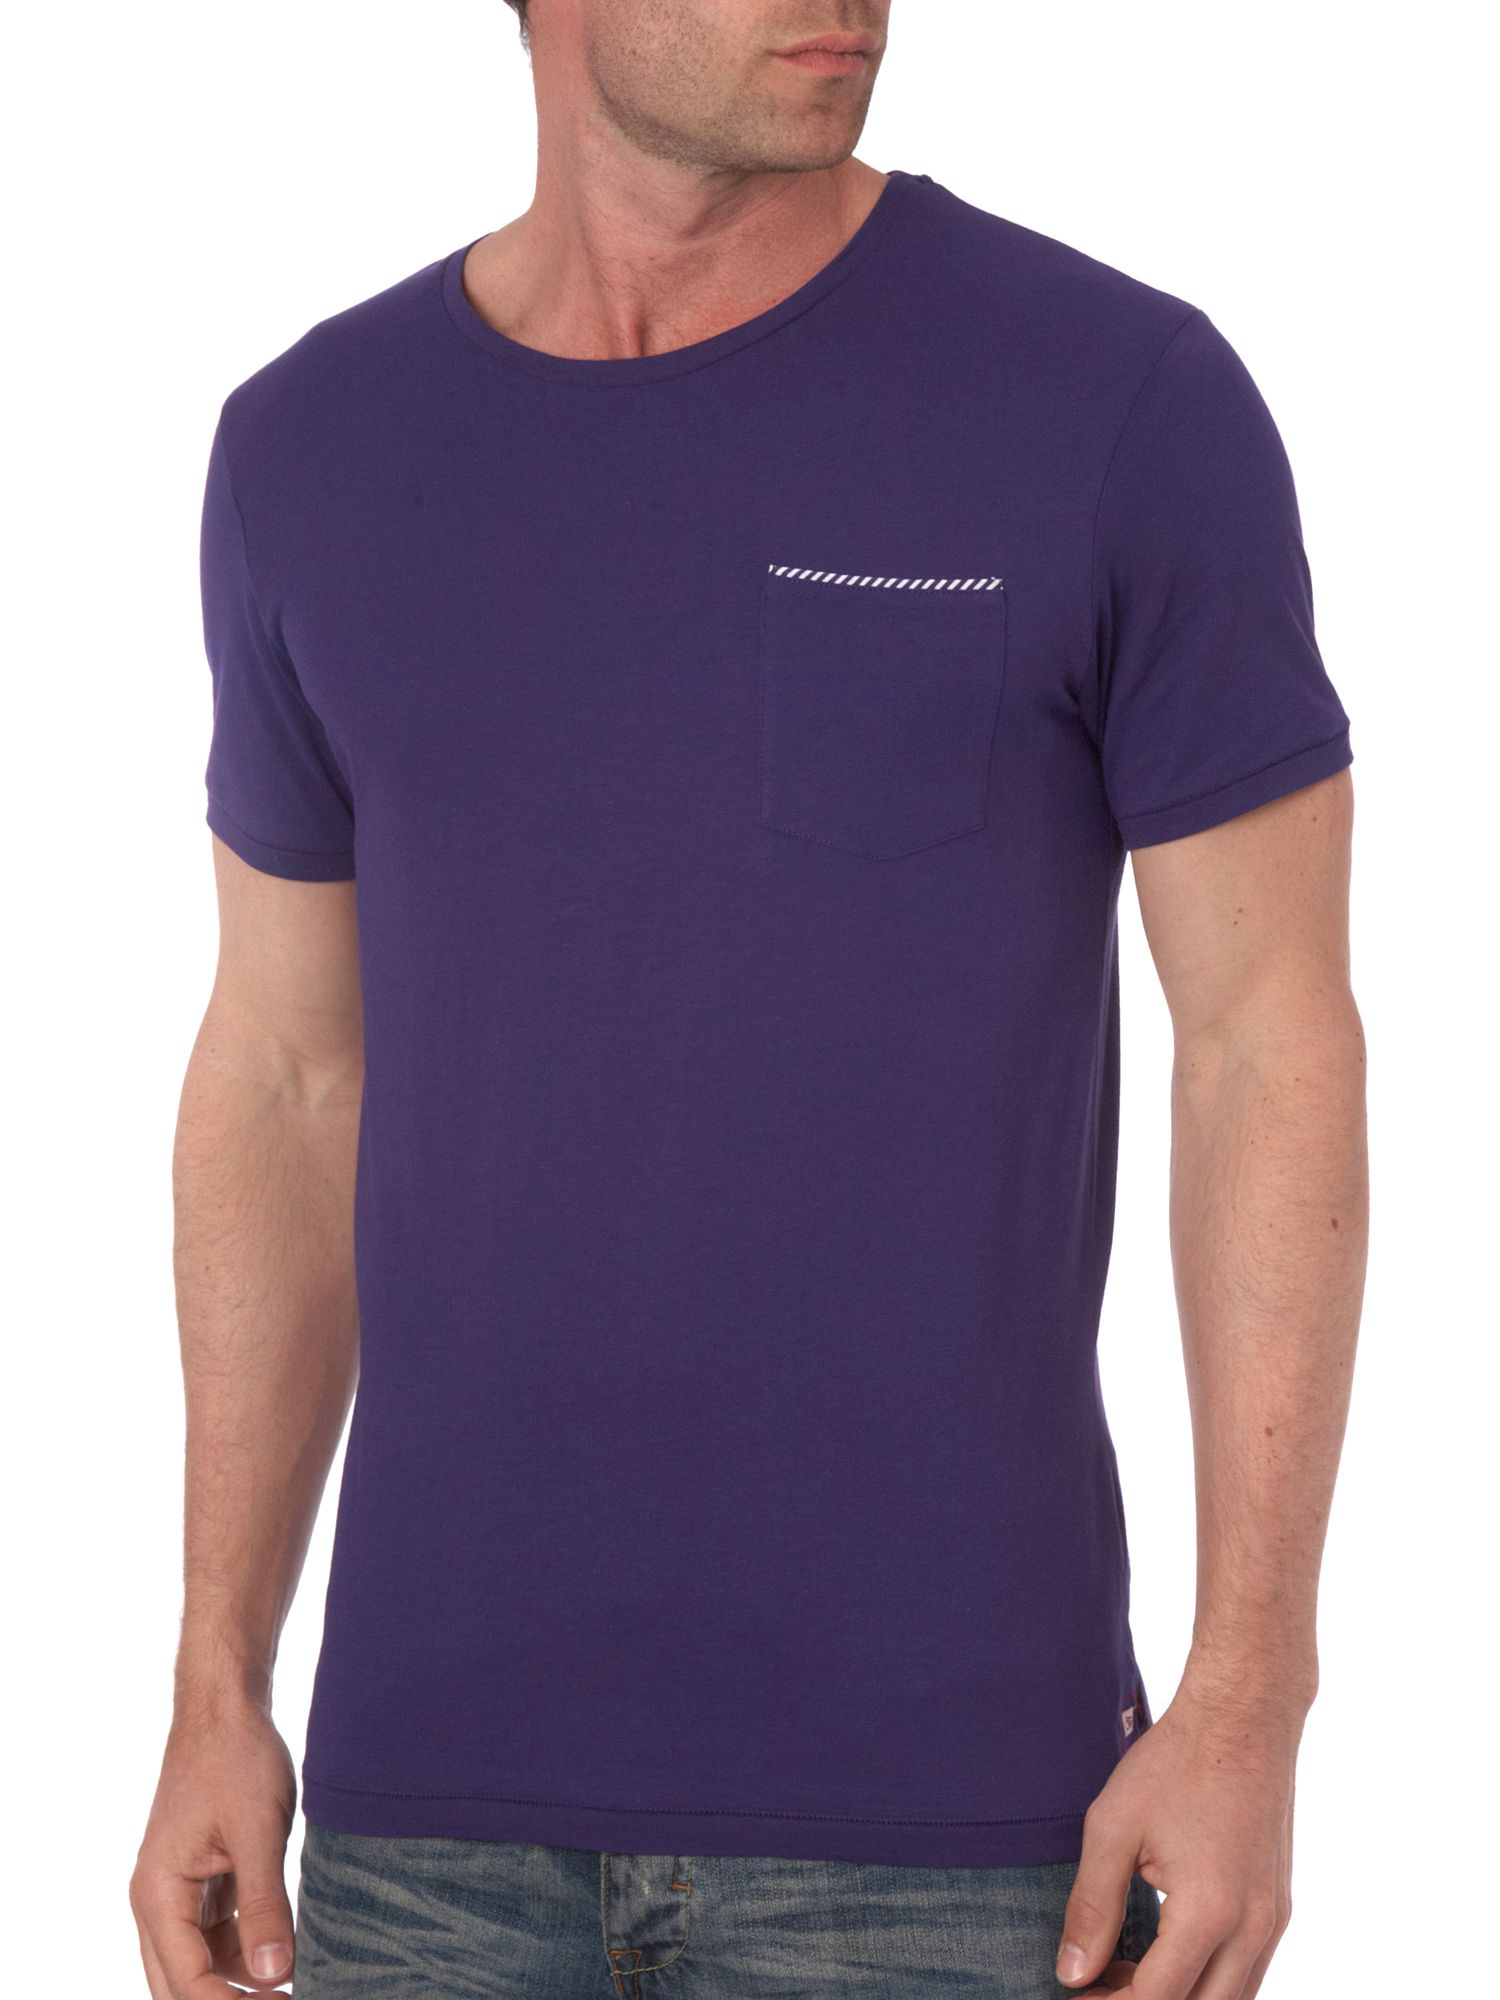 Selected Short sleeve tipped pocket T-shirt Purple product image